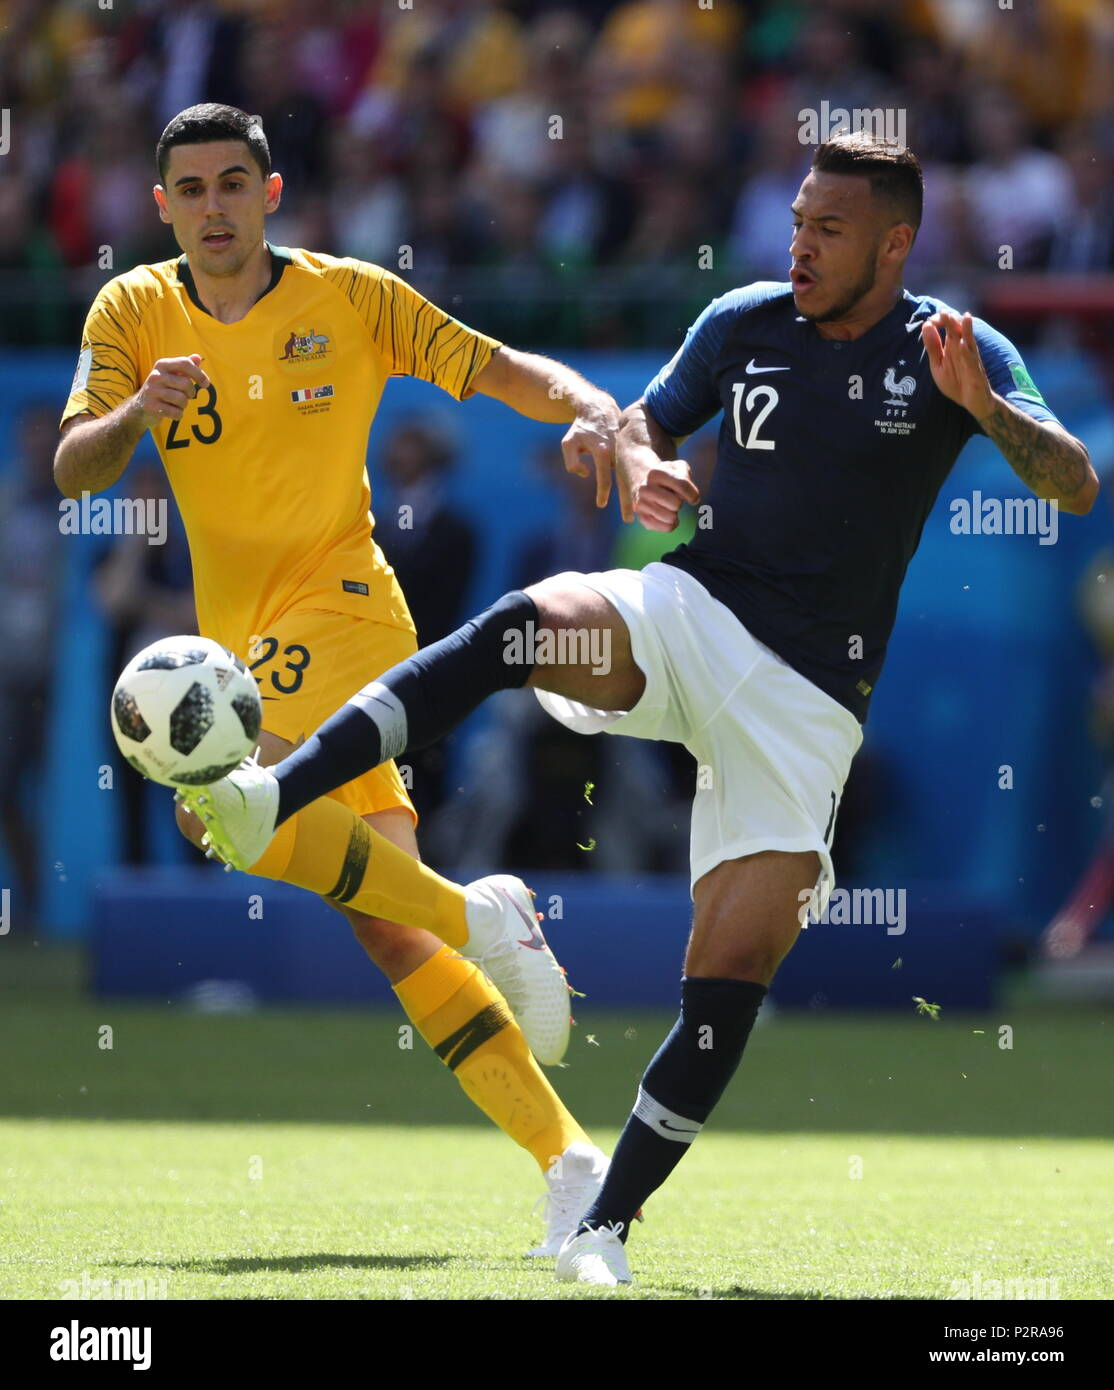 KAZAN, RUSSIA - JUNE 16, 2018: Australia's Tom Rogic (L) and France's Corentin Tolisso in their 2018 FIFA World Cup Group C Round 1 match at Kazan Arena Stadium; France wins 2-1. Yegor Aleyev/TASS - Stock Image